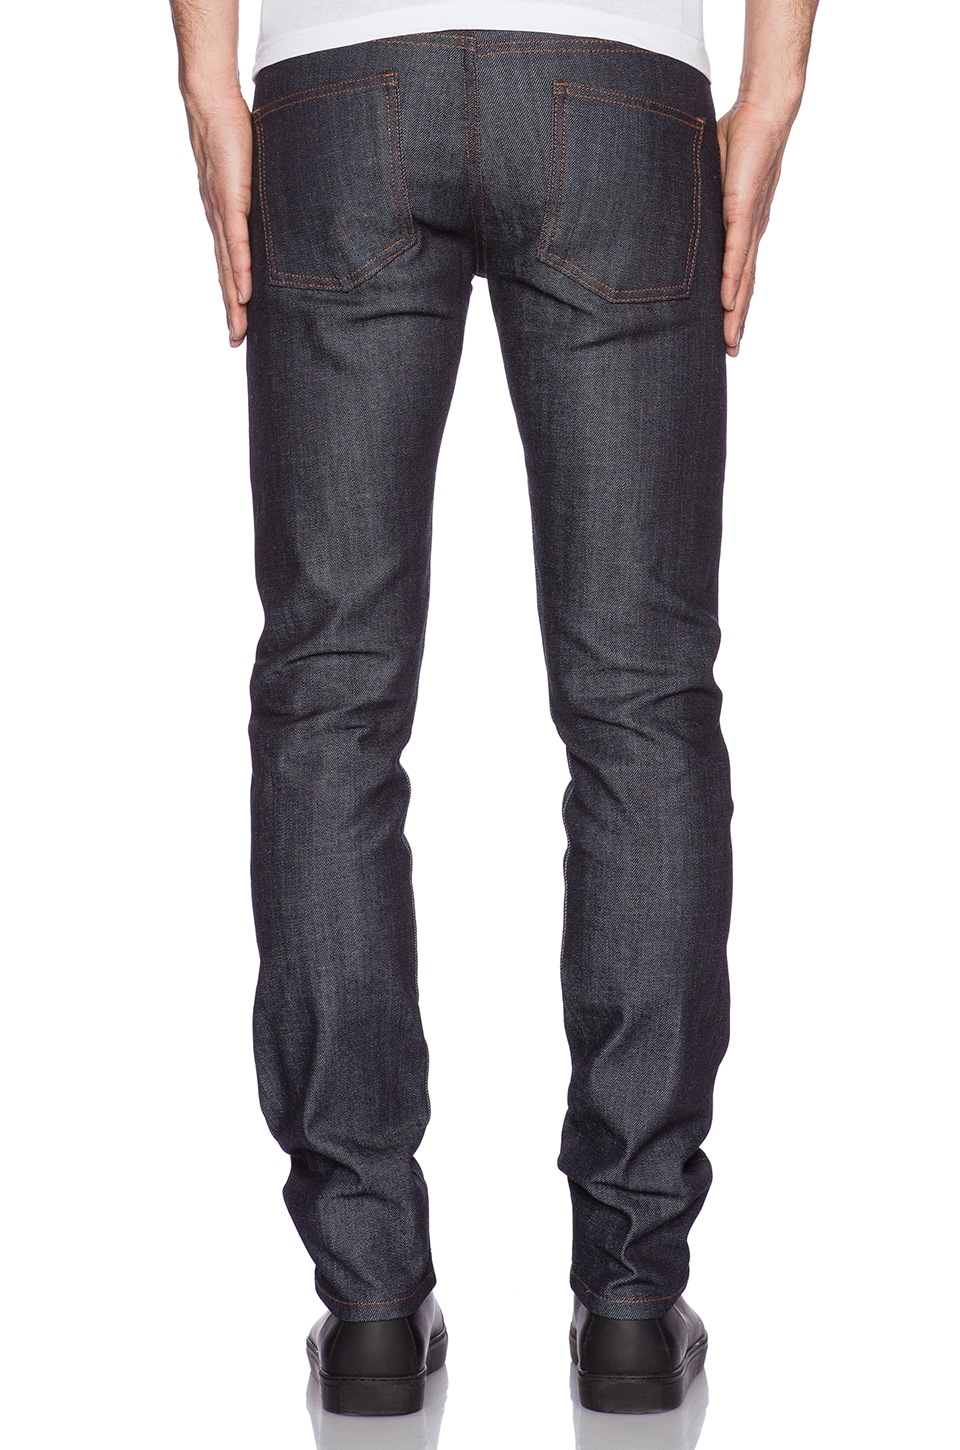 Naked & Famous Denim Super Skinny Guy 12.5 oz Stretch Selvedge in Indigo